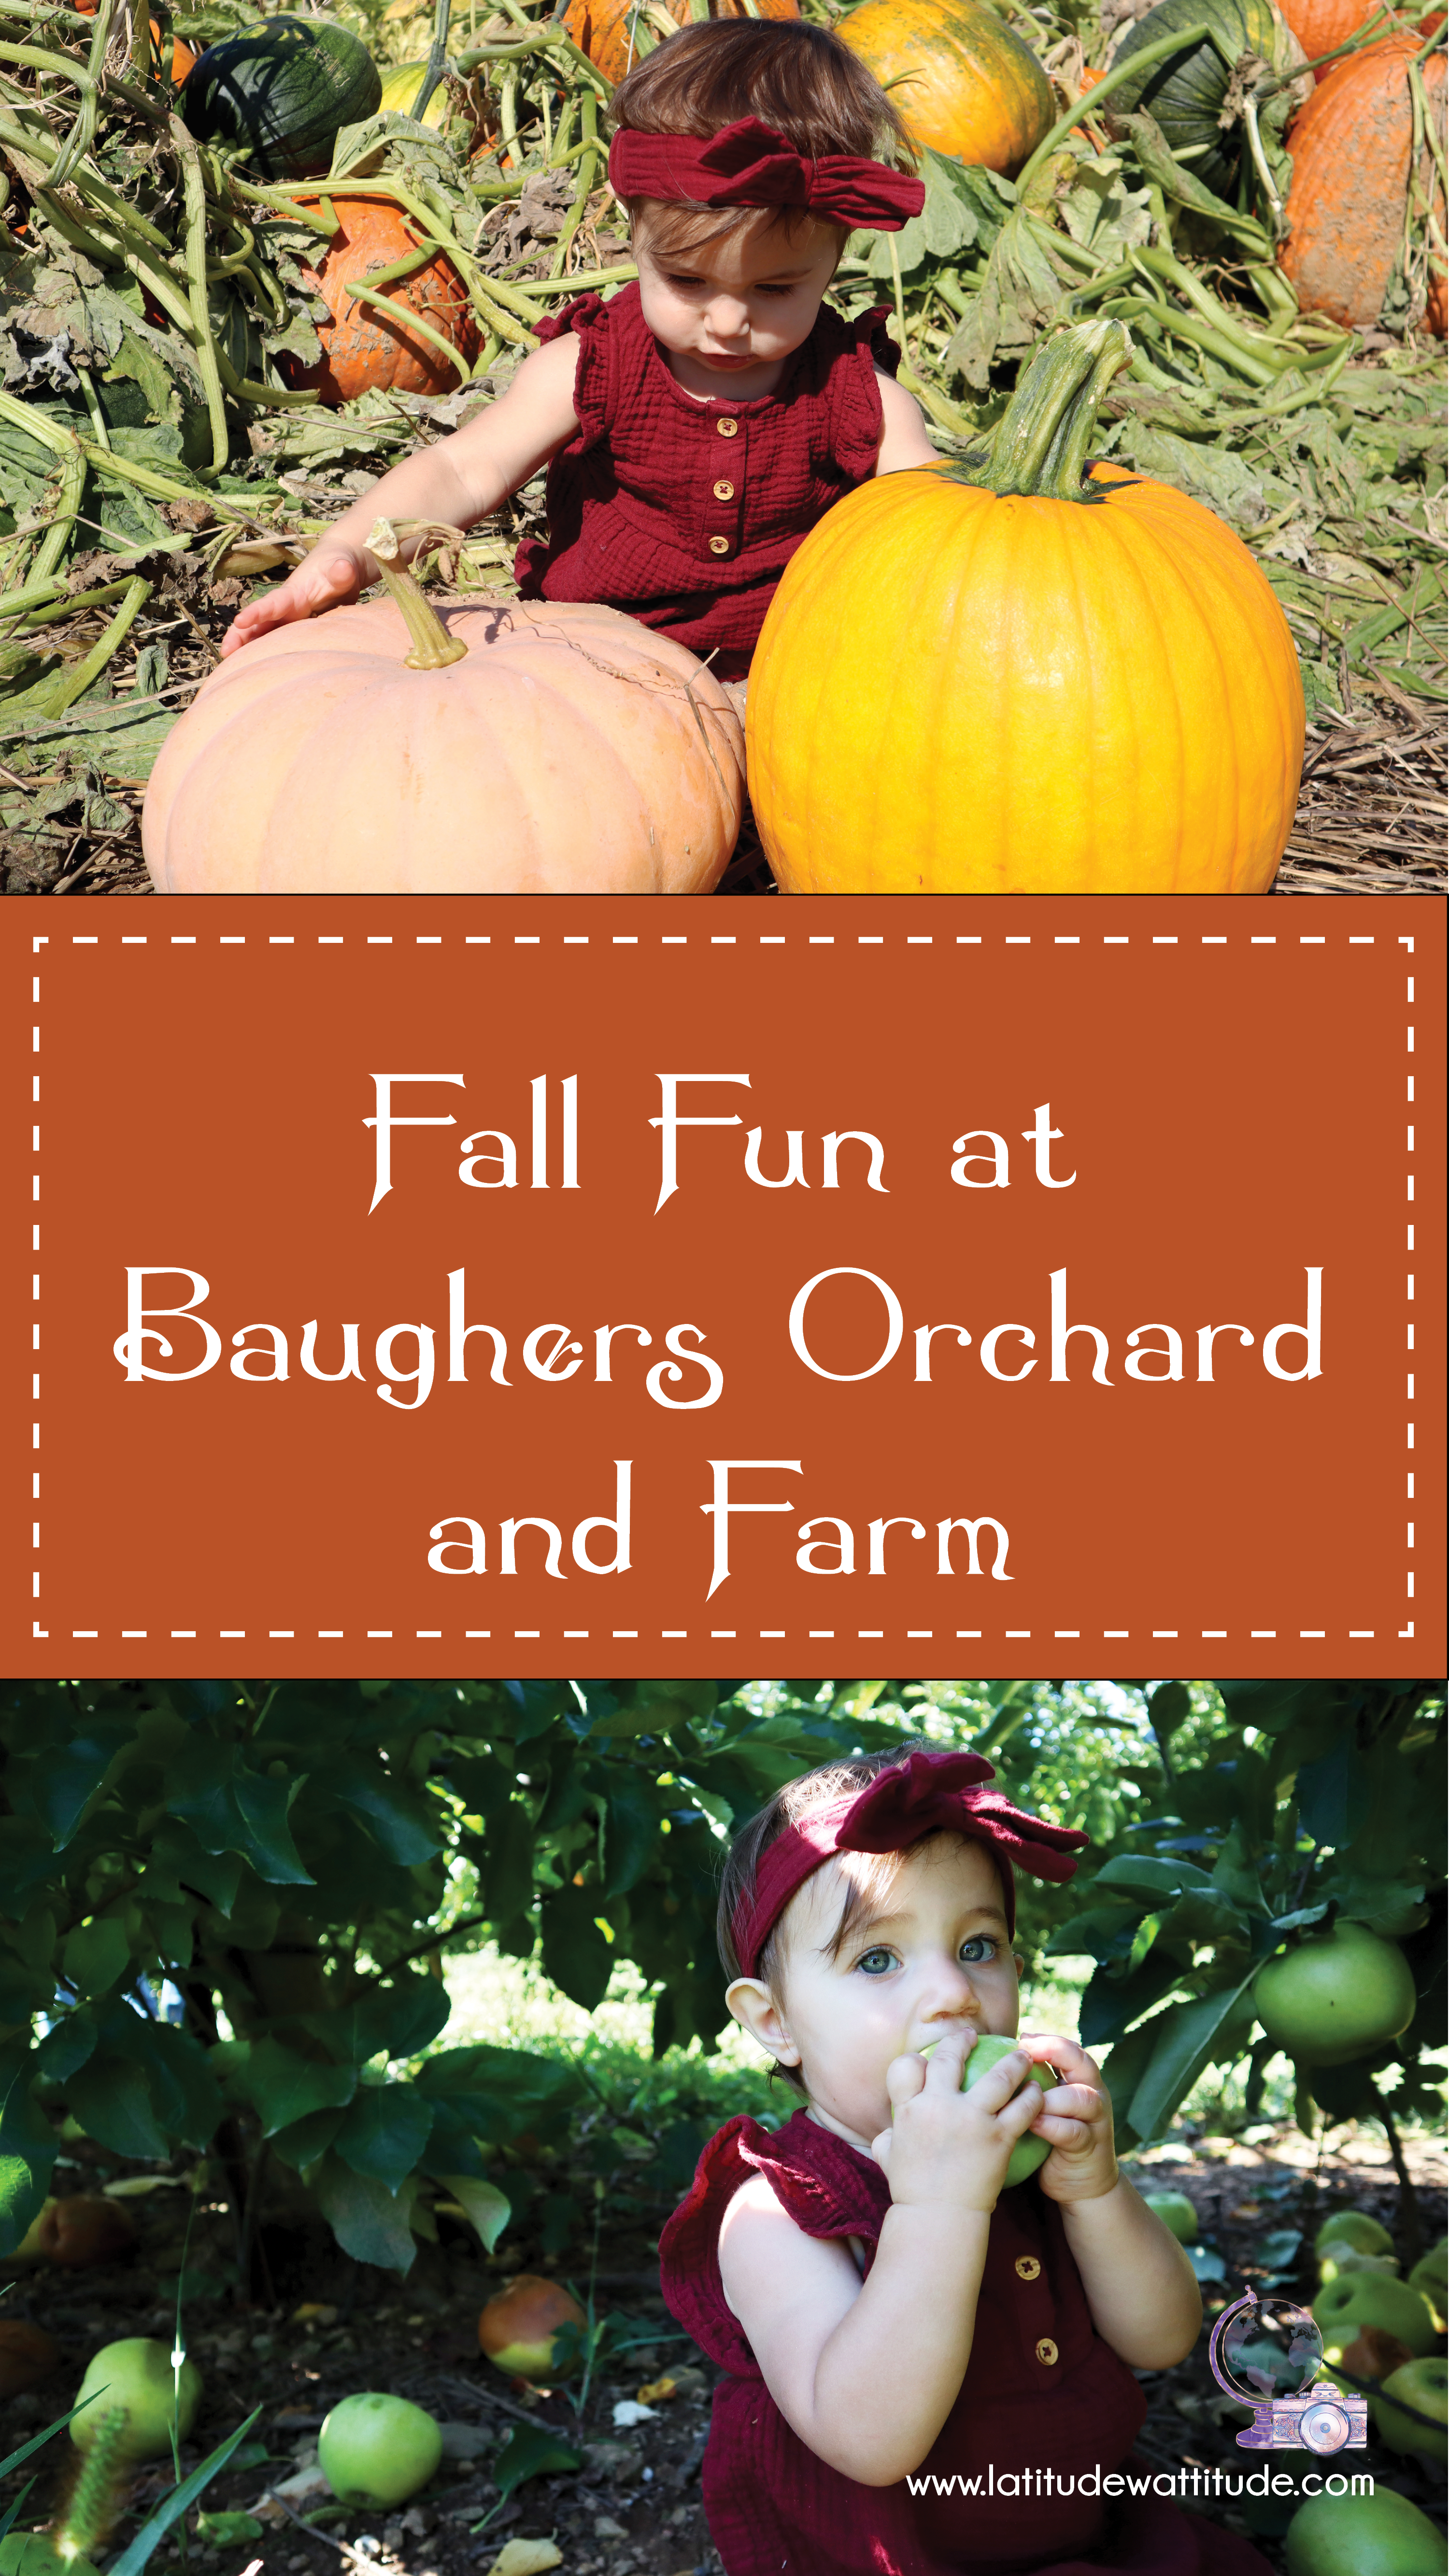 Baugher's Orchard and farm